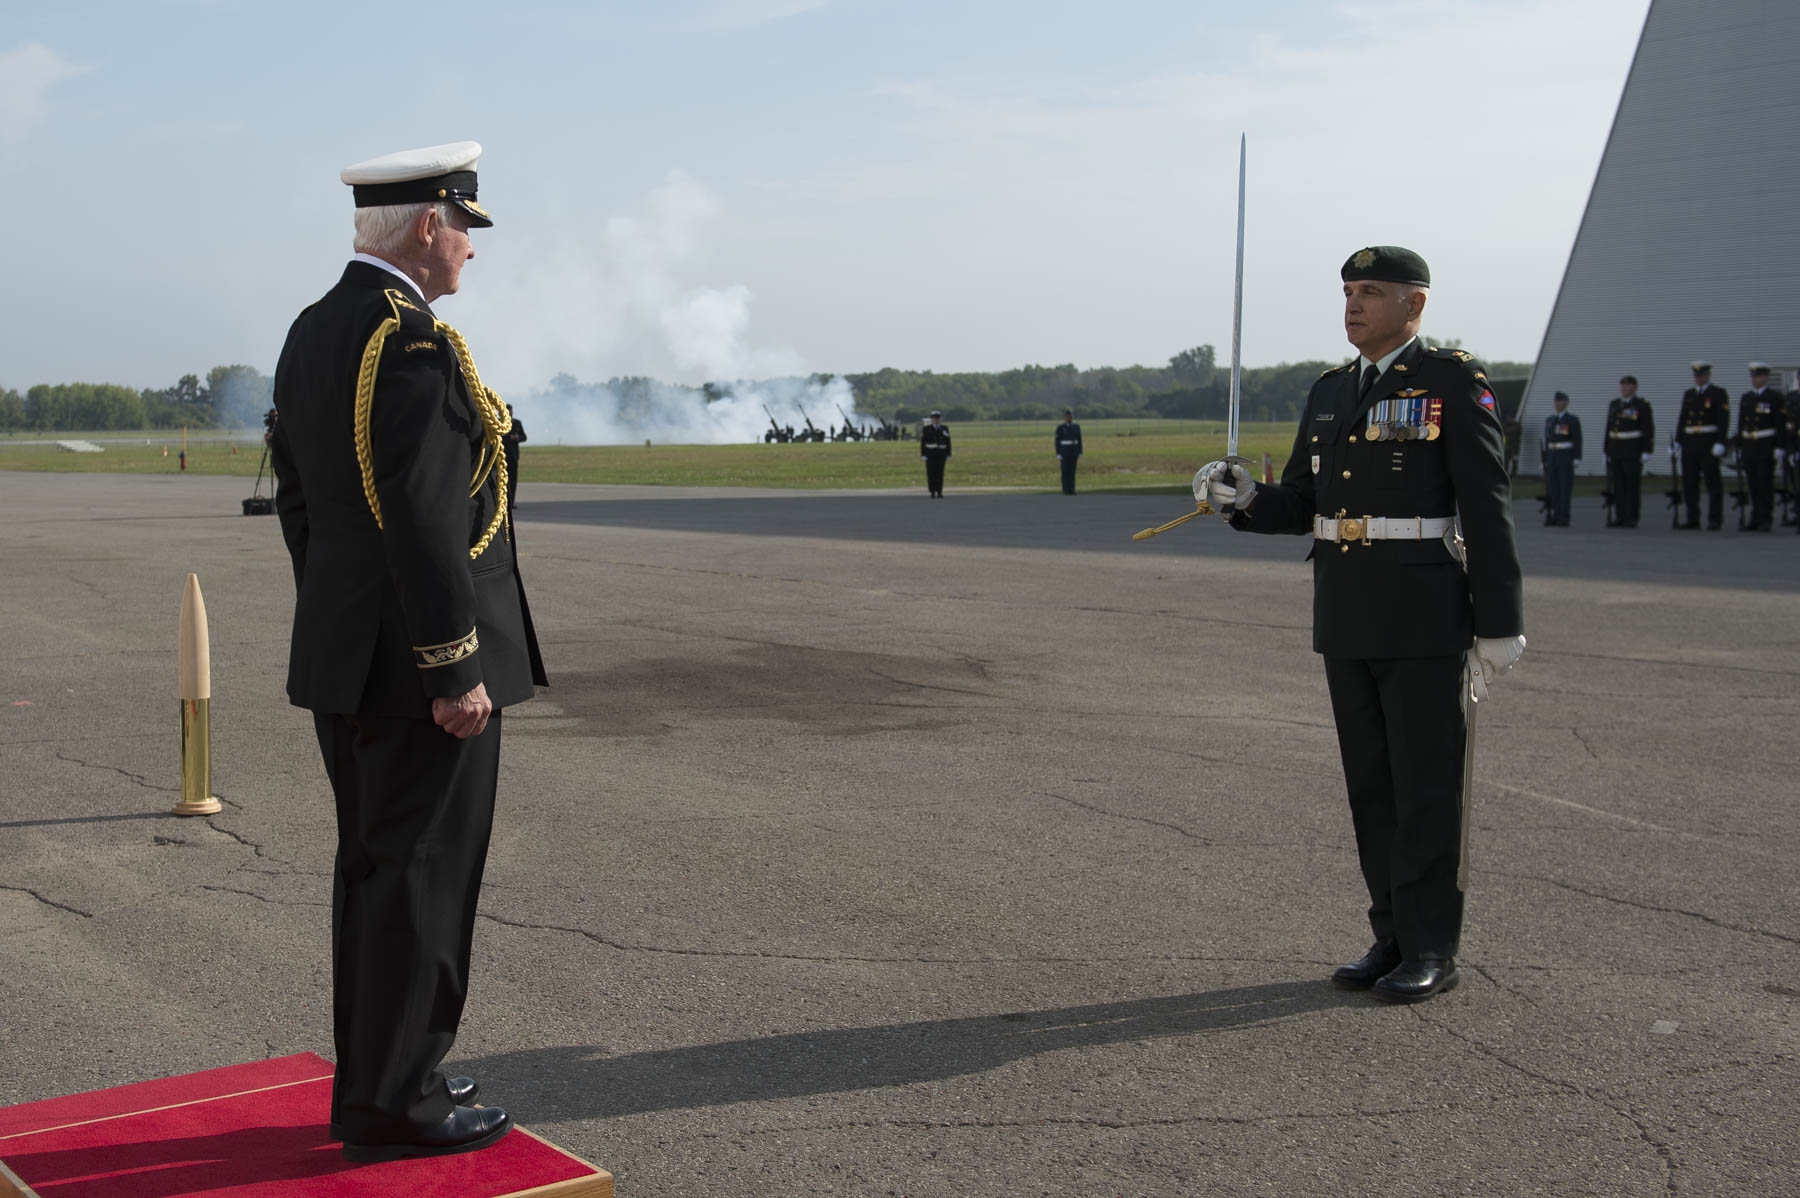 The Governor General received military honours including a 100-member guard of honour, a general salute, a CF-18 flypast and 21-gun salute.